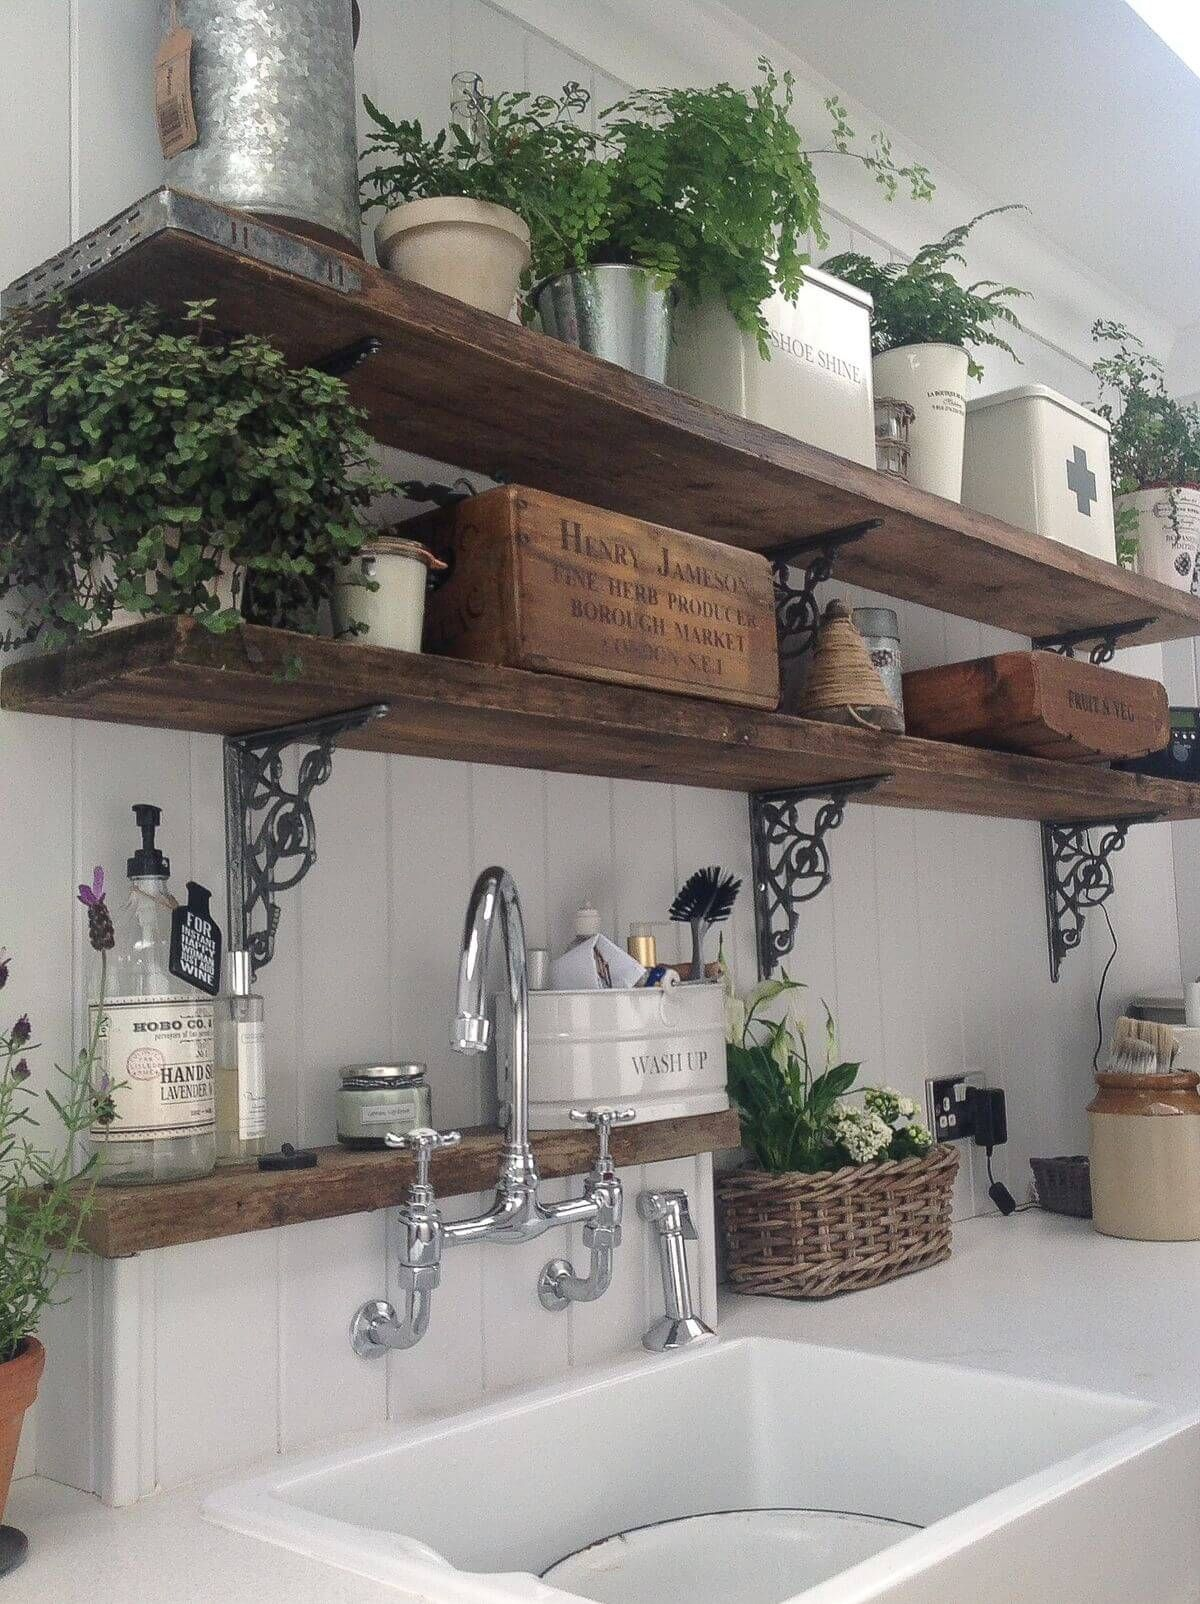 Kitchen Decorative Shelf Rustic Wooden Kitchen Shelves With Potted Ferns Decor